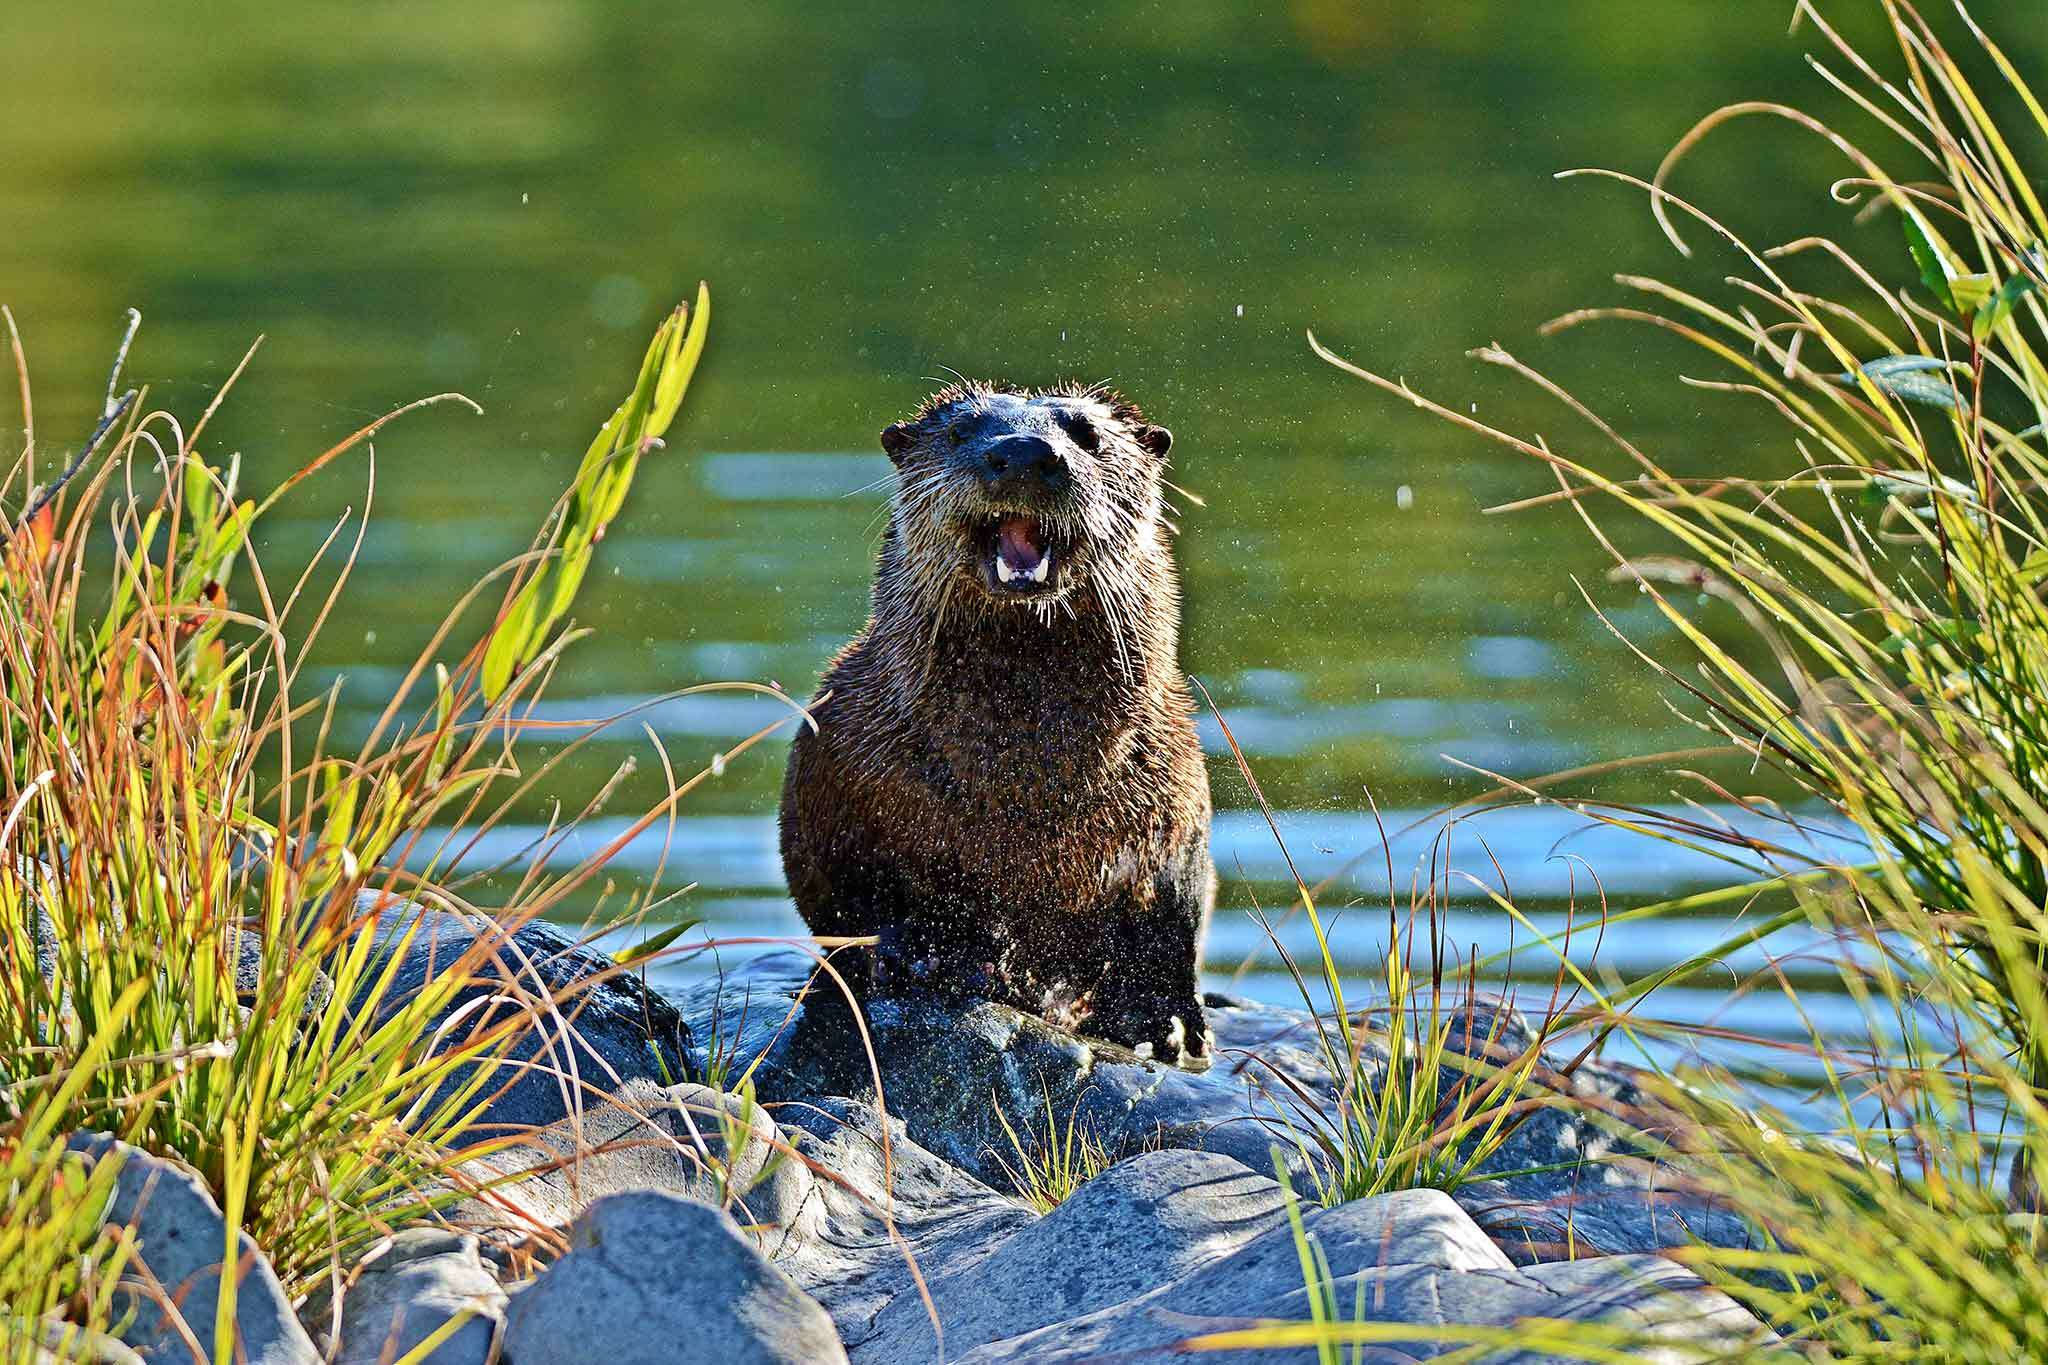 On otters: 'The cutest vicious devils you'll ever see'